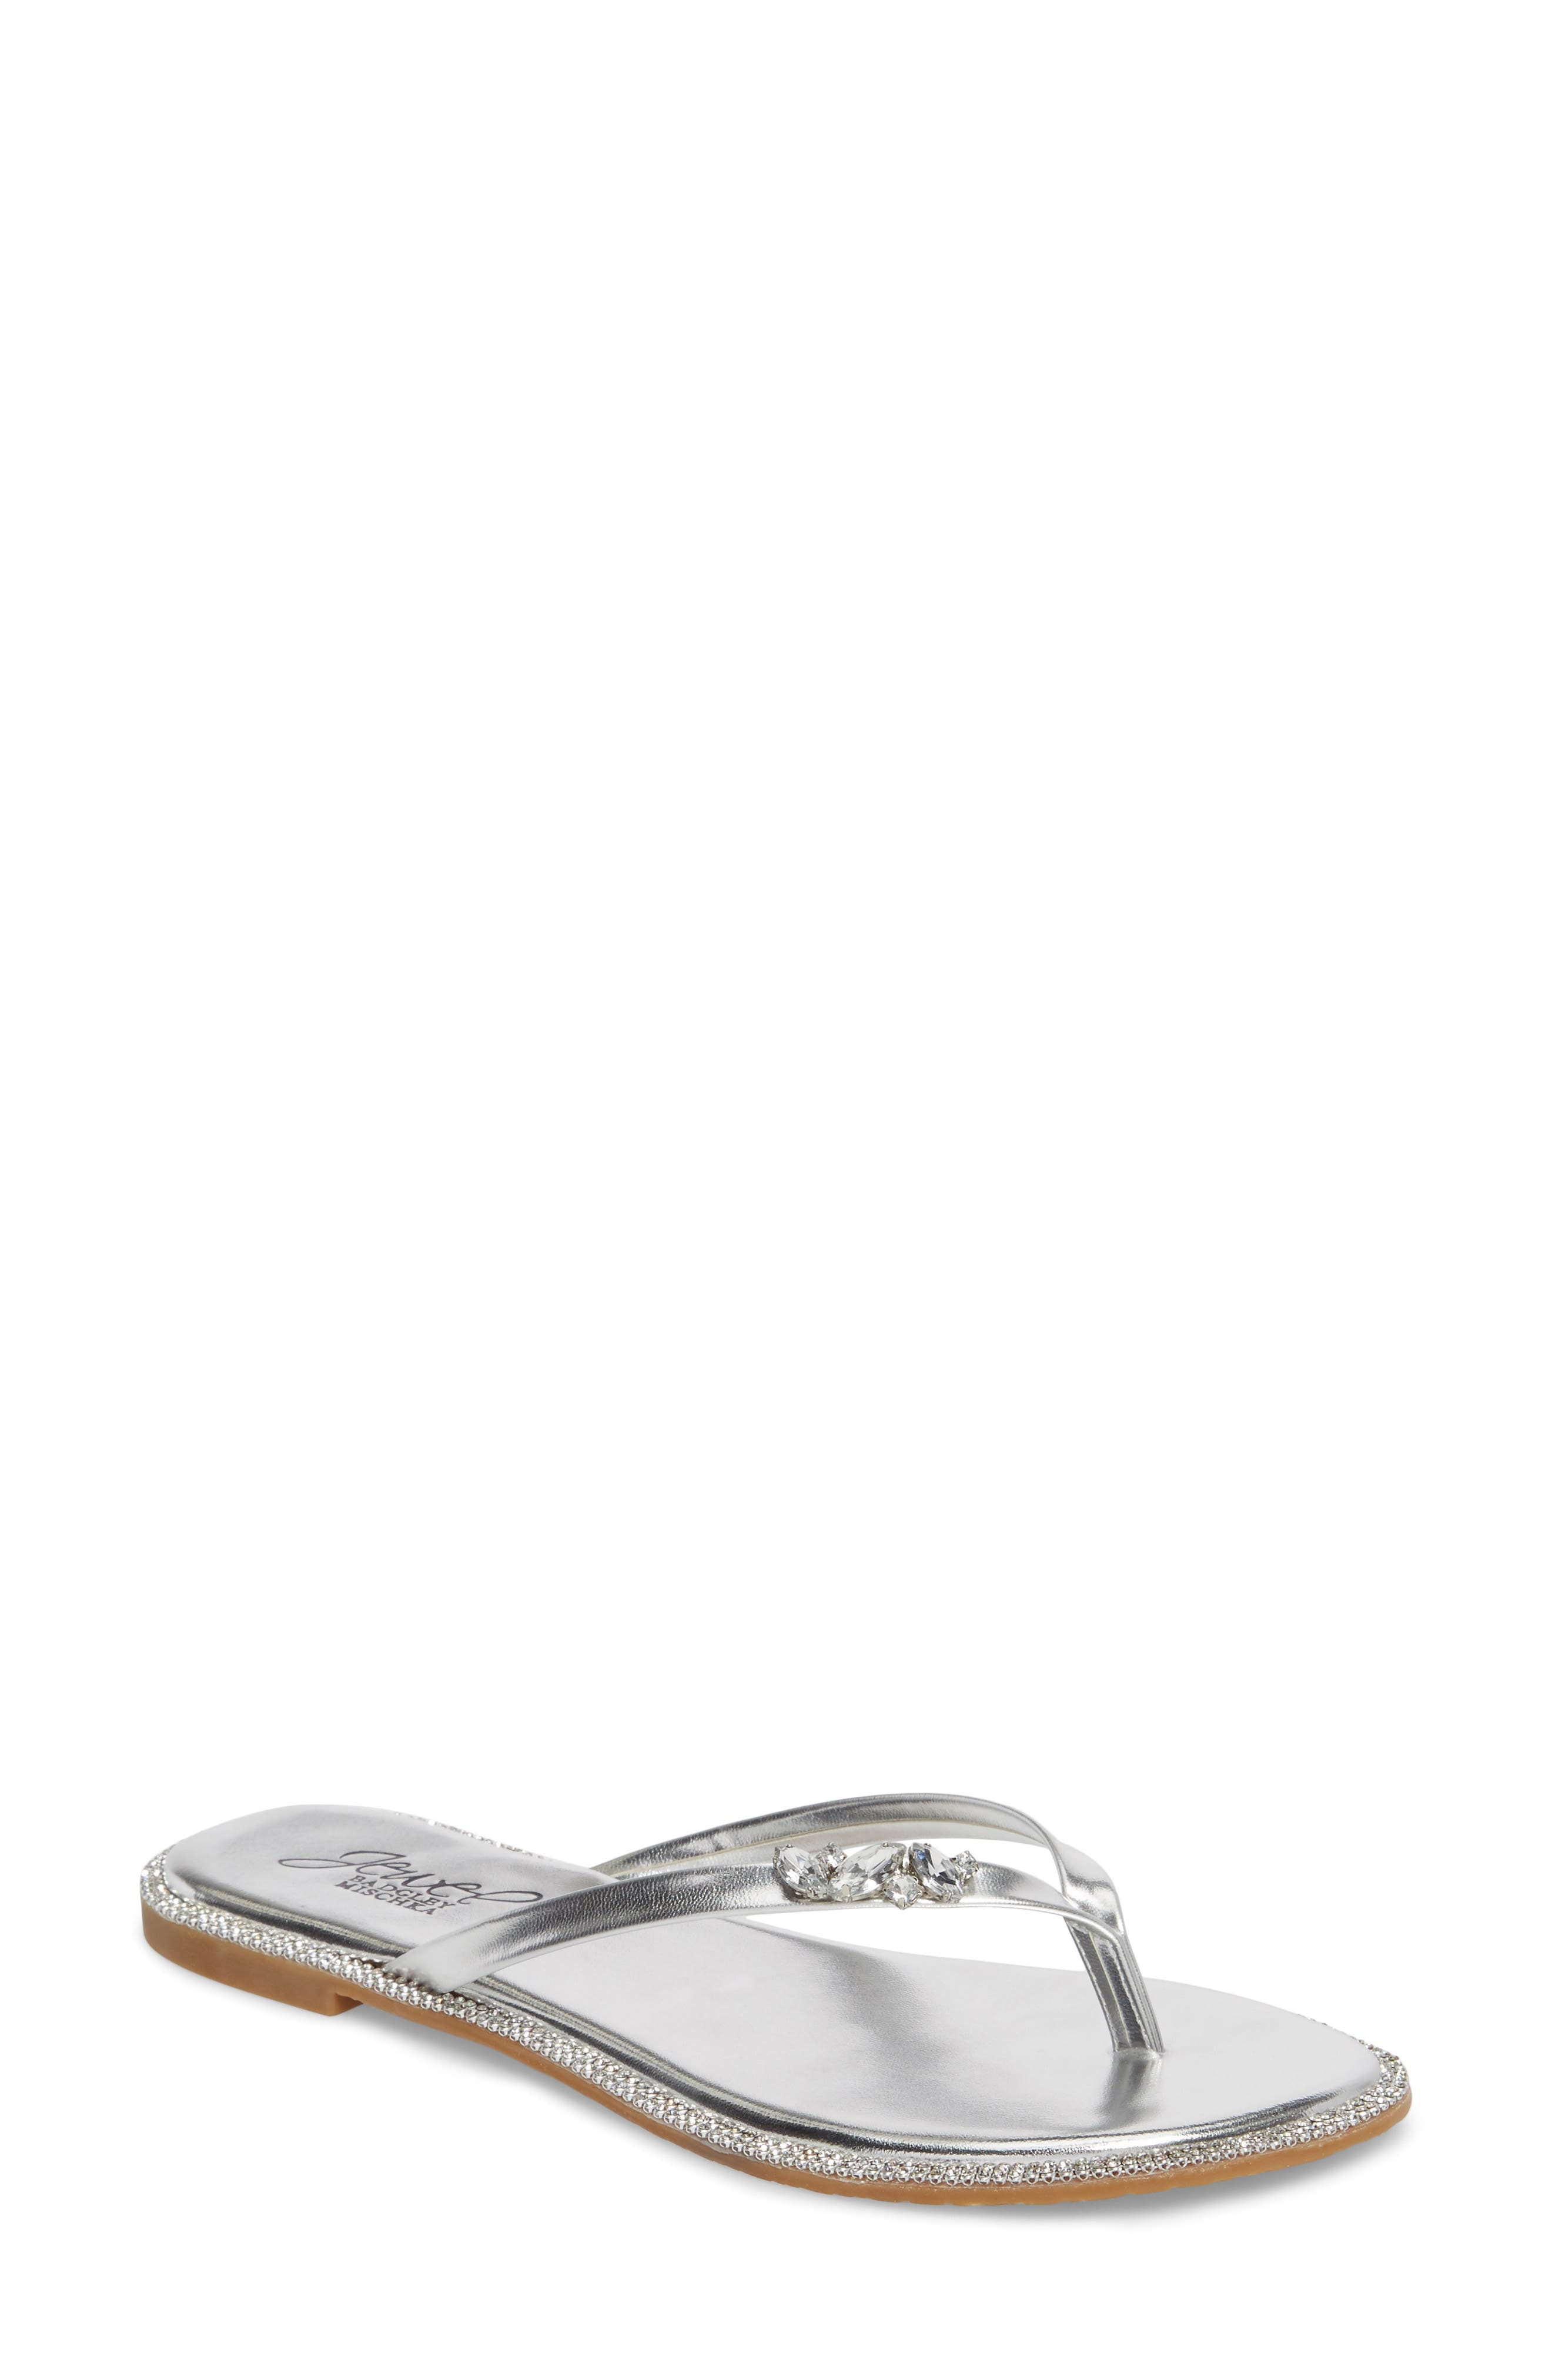 Thalia Crystal Embellished Flip Flop,                             Main thumbnail 1, color,                             Silver Leather